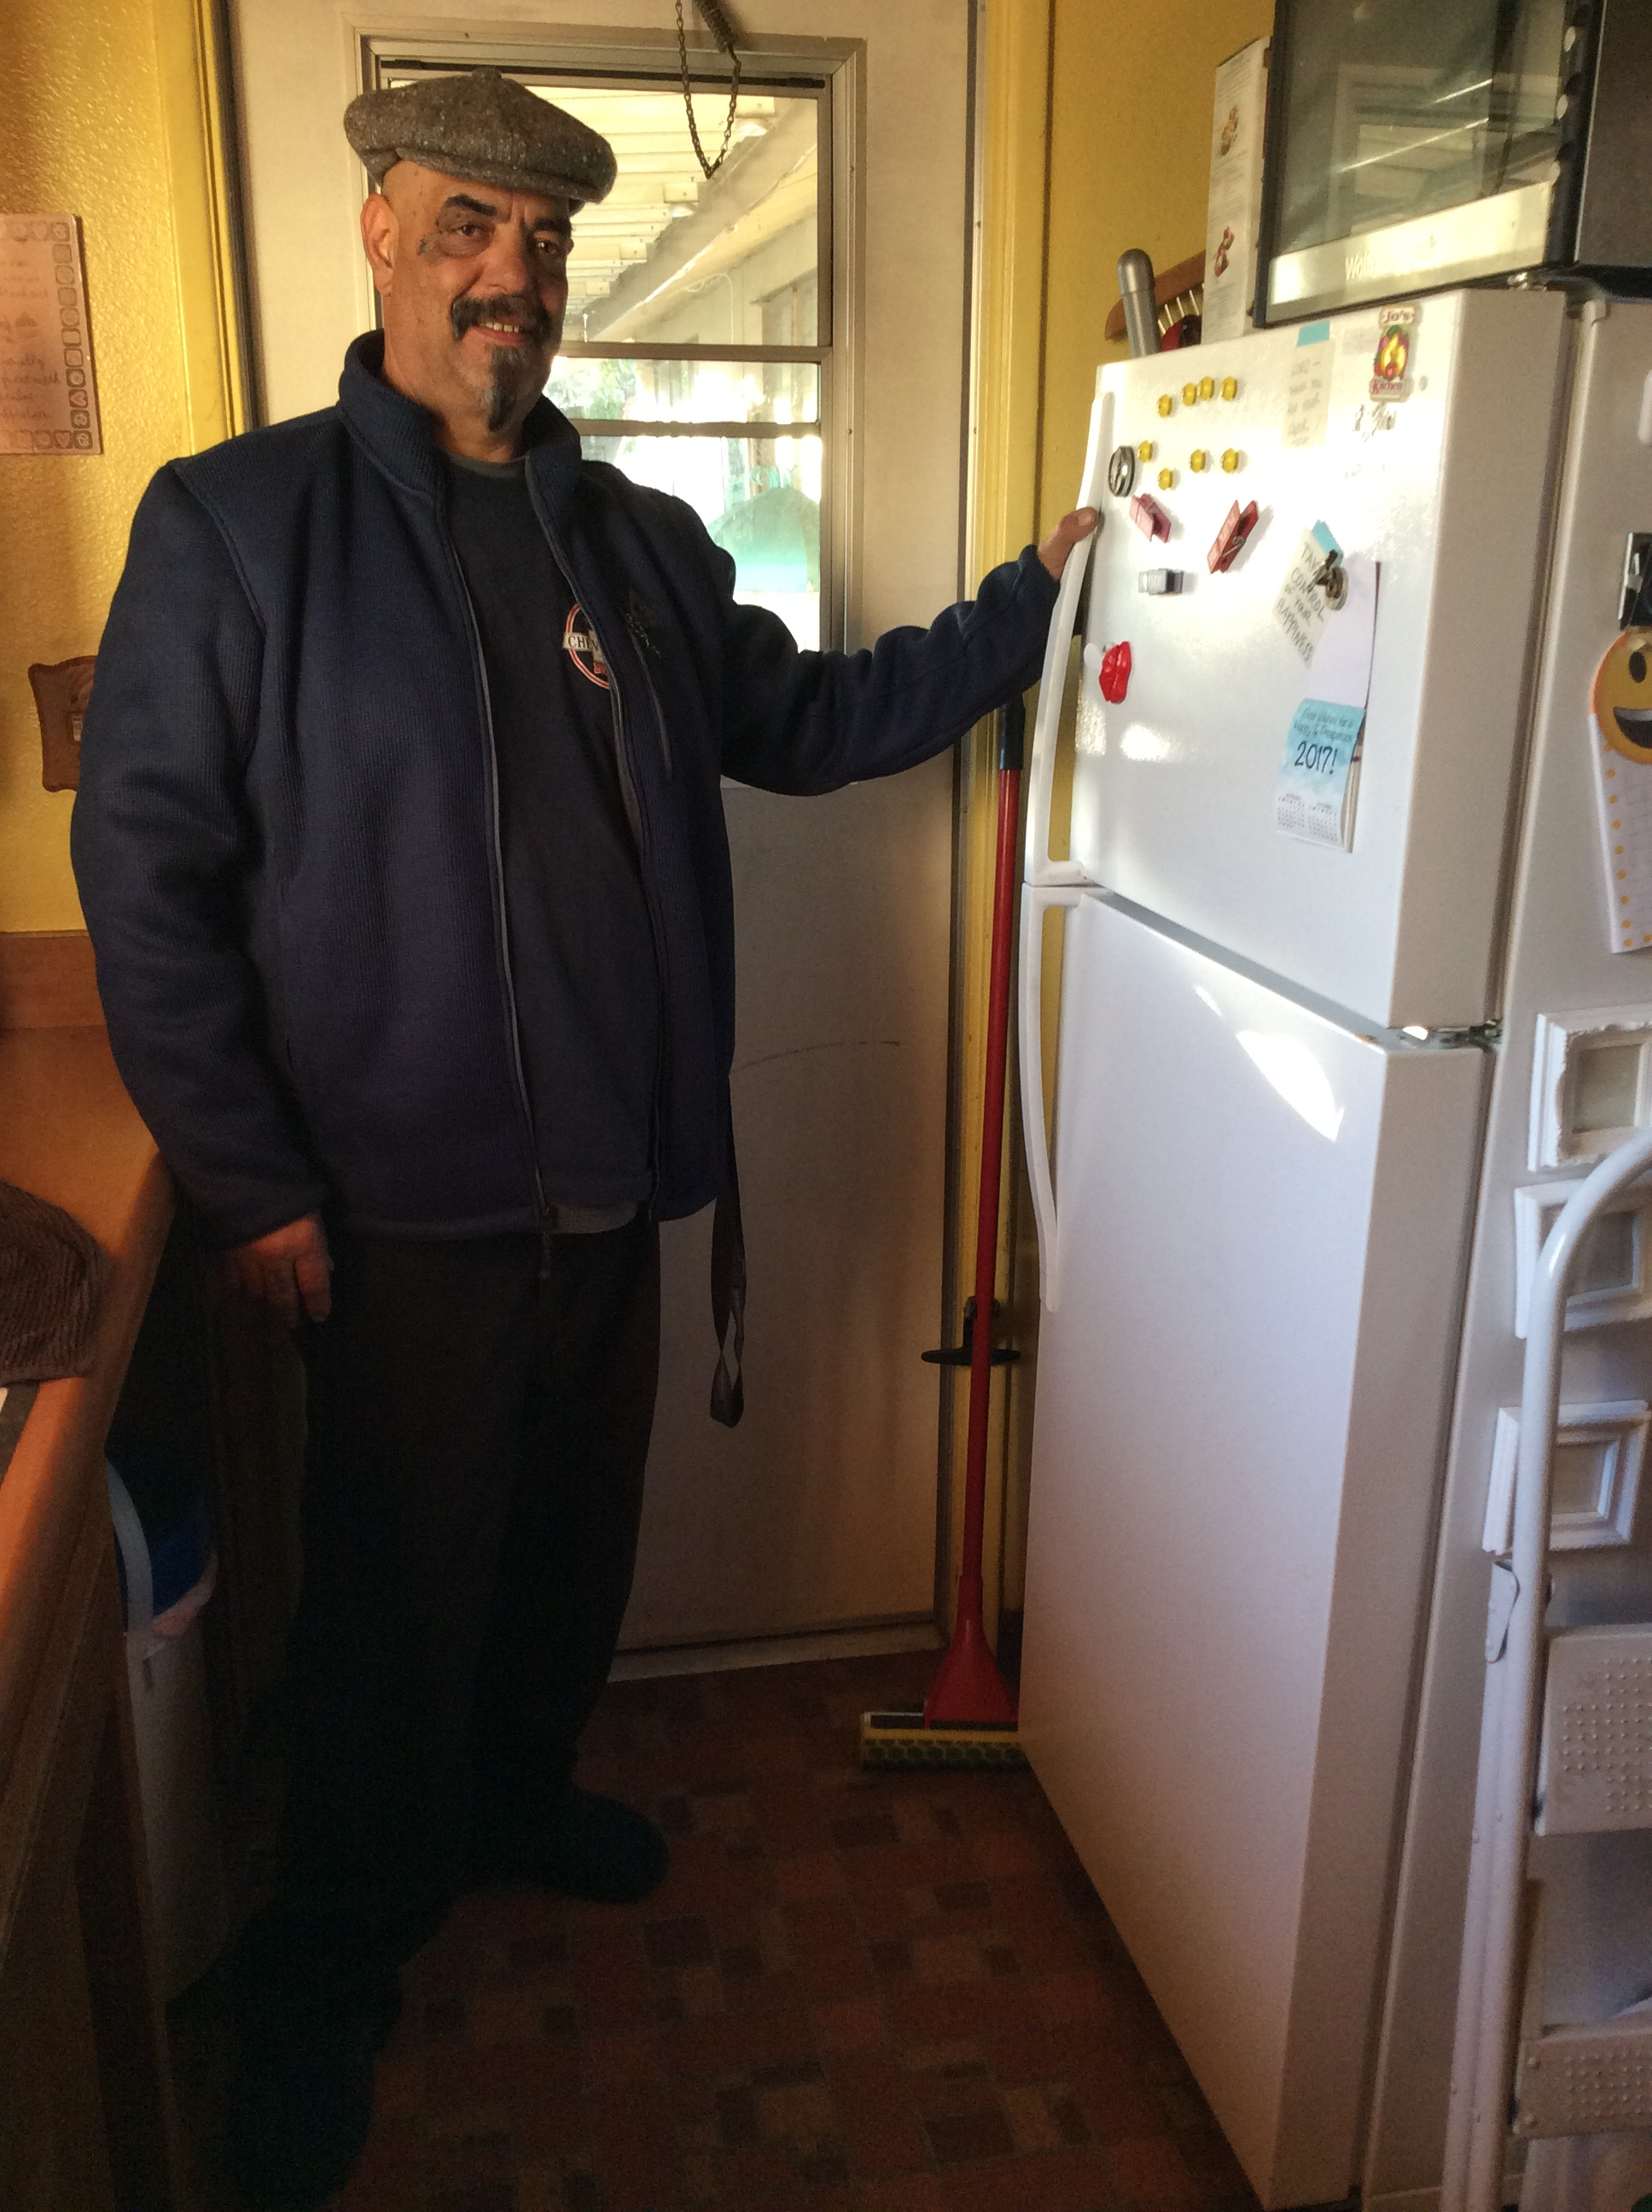 Jose with his new refrigerator